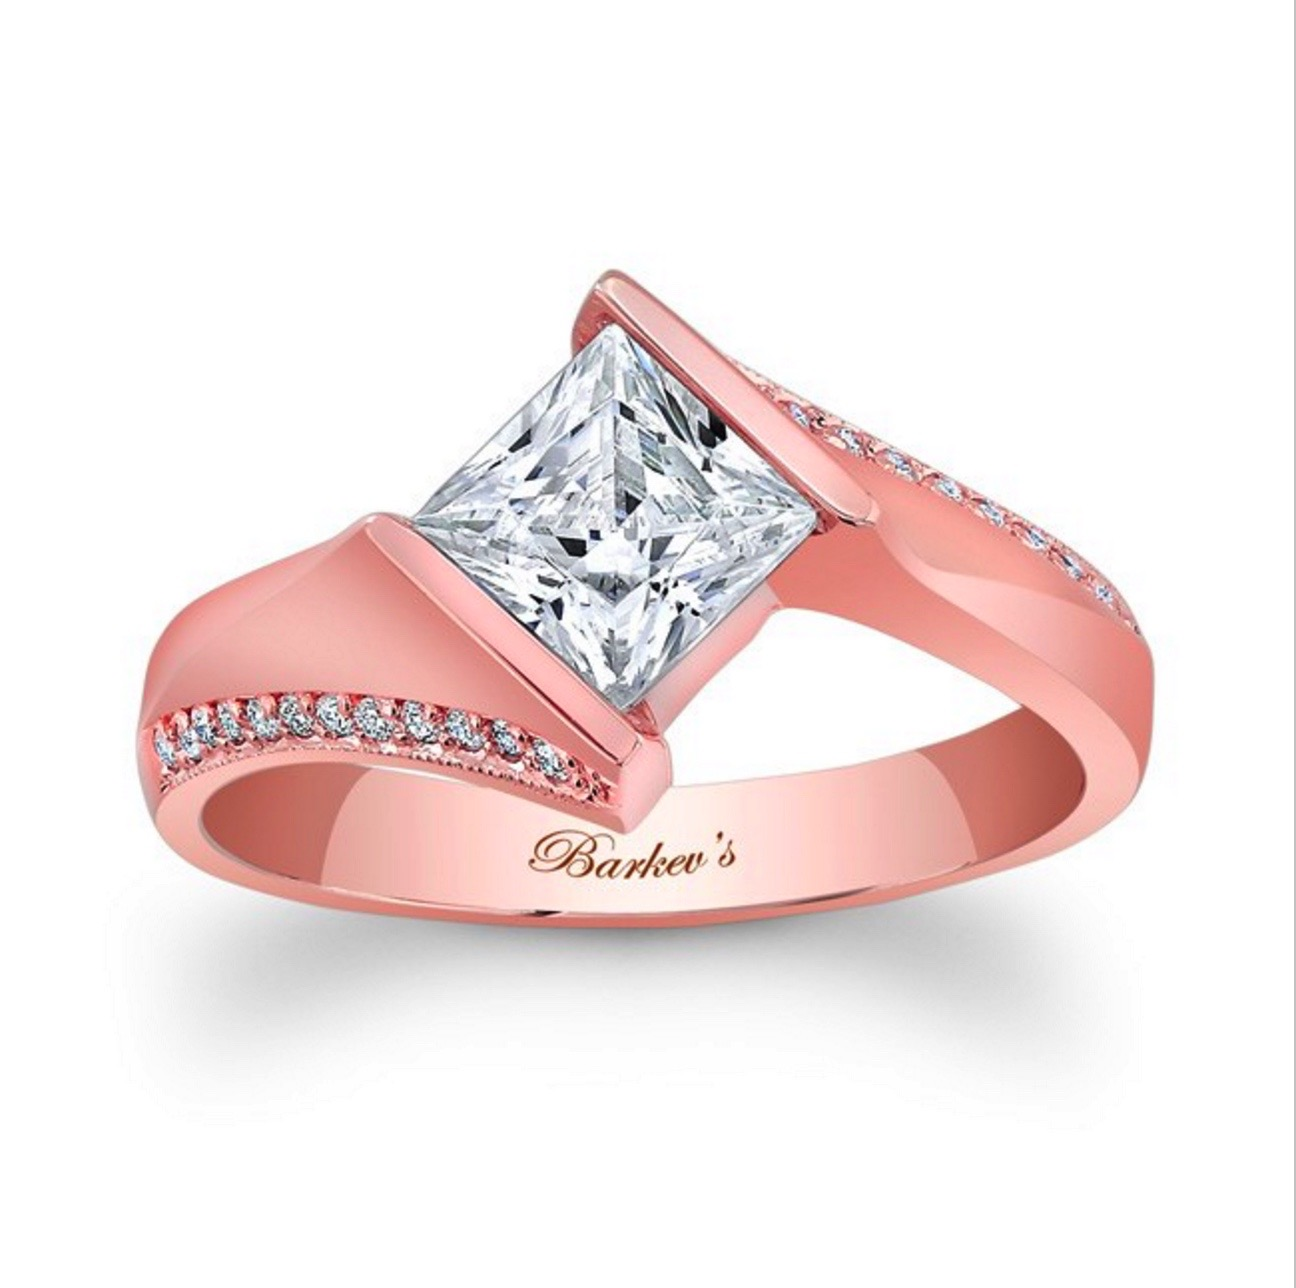 Princess Cut Solitaire Ring - 14K Rose Gold